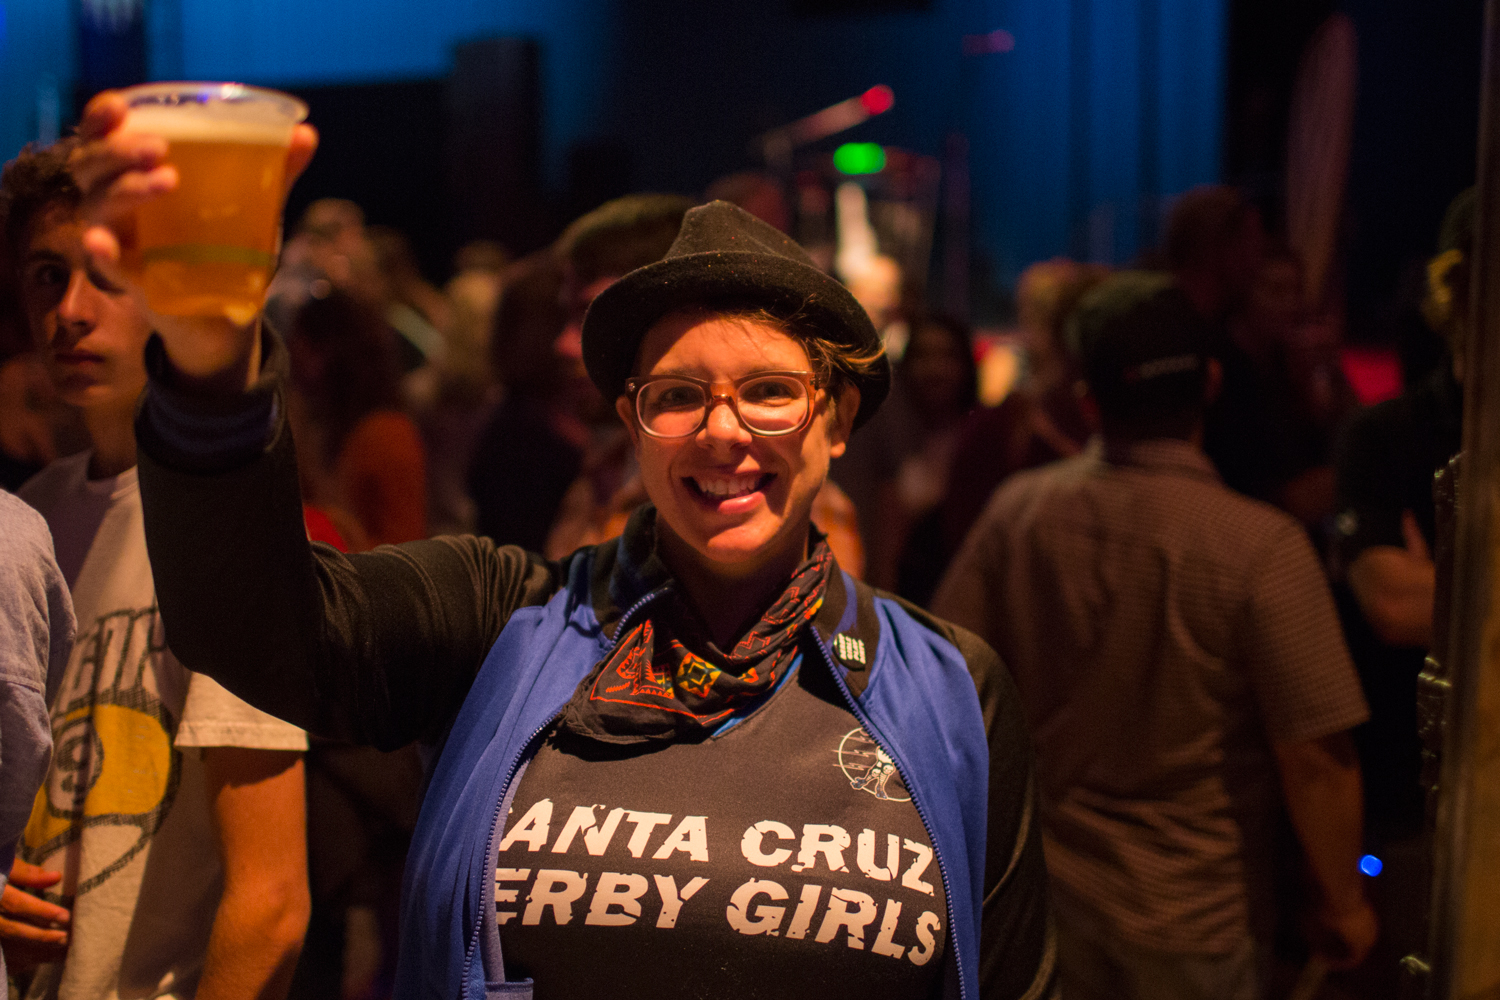 Cheers to the Santa Cruz Derby Girls and all their thirsty members.